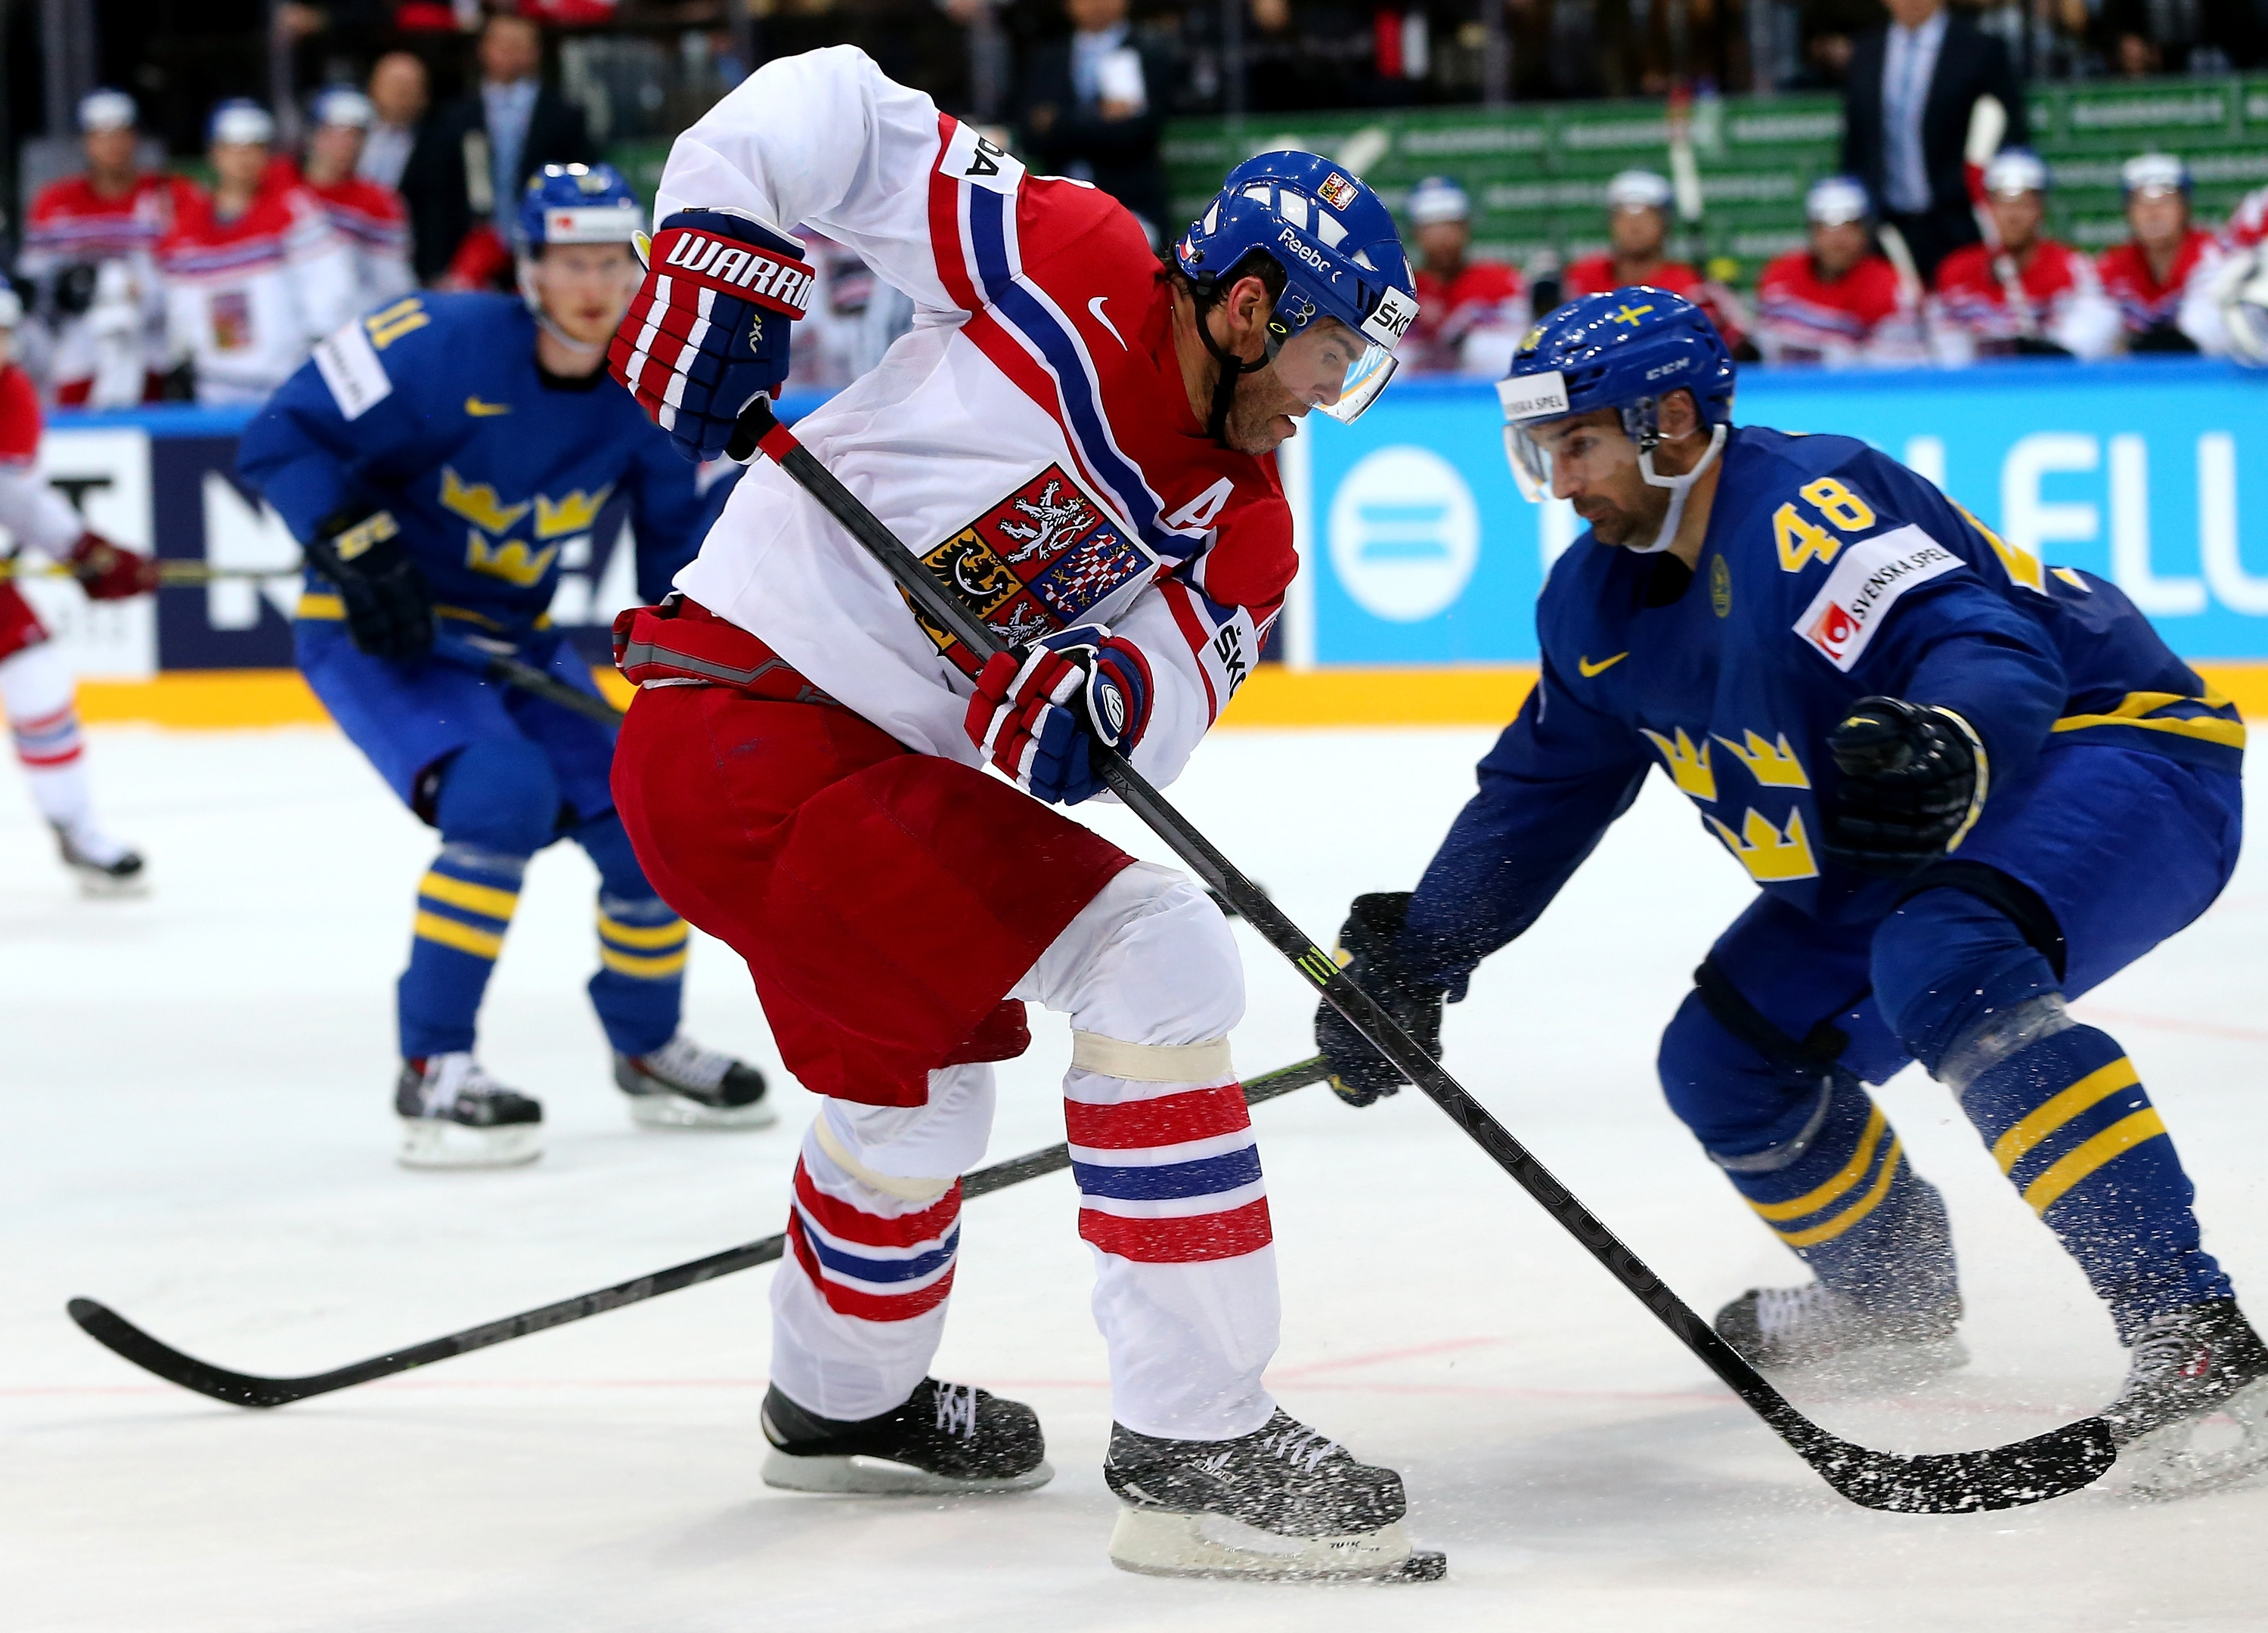 hockey czech republic sweden online dating Match: czech republic - sweden live result and current score 31082013 - 19:00.